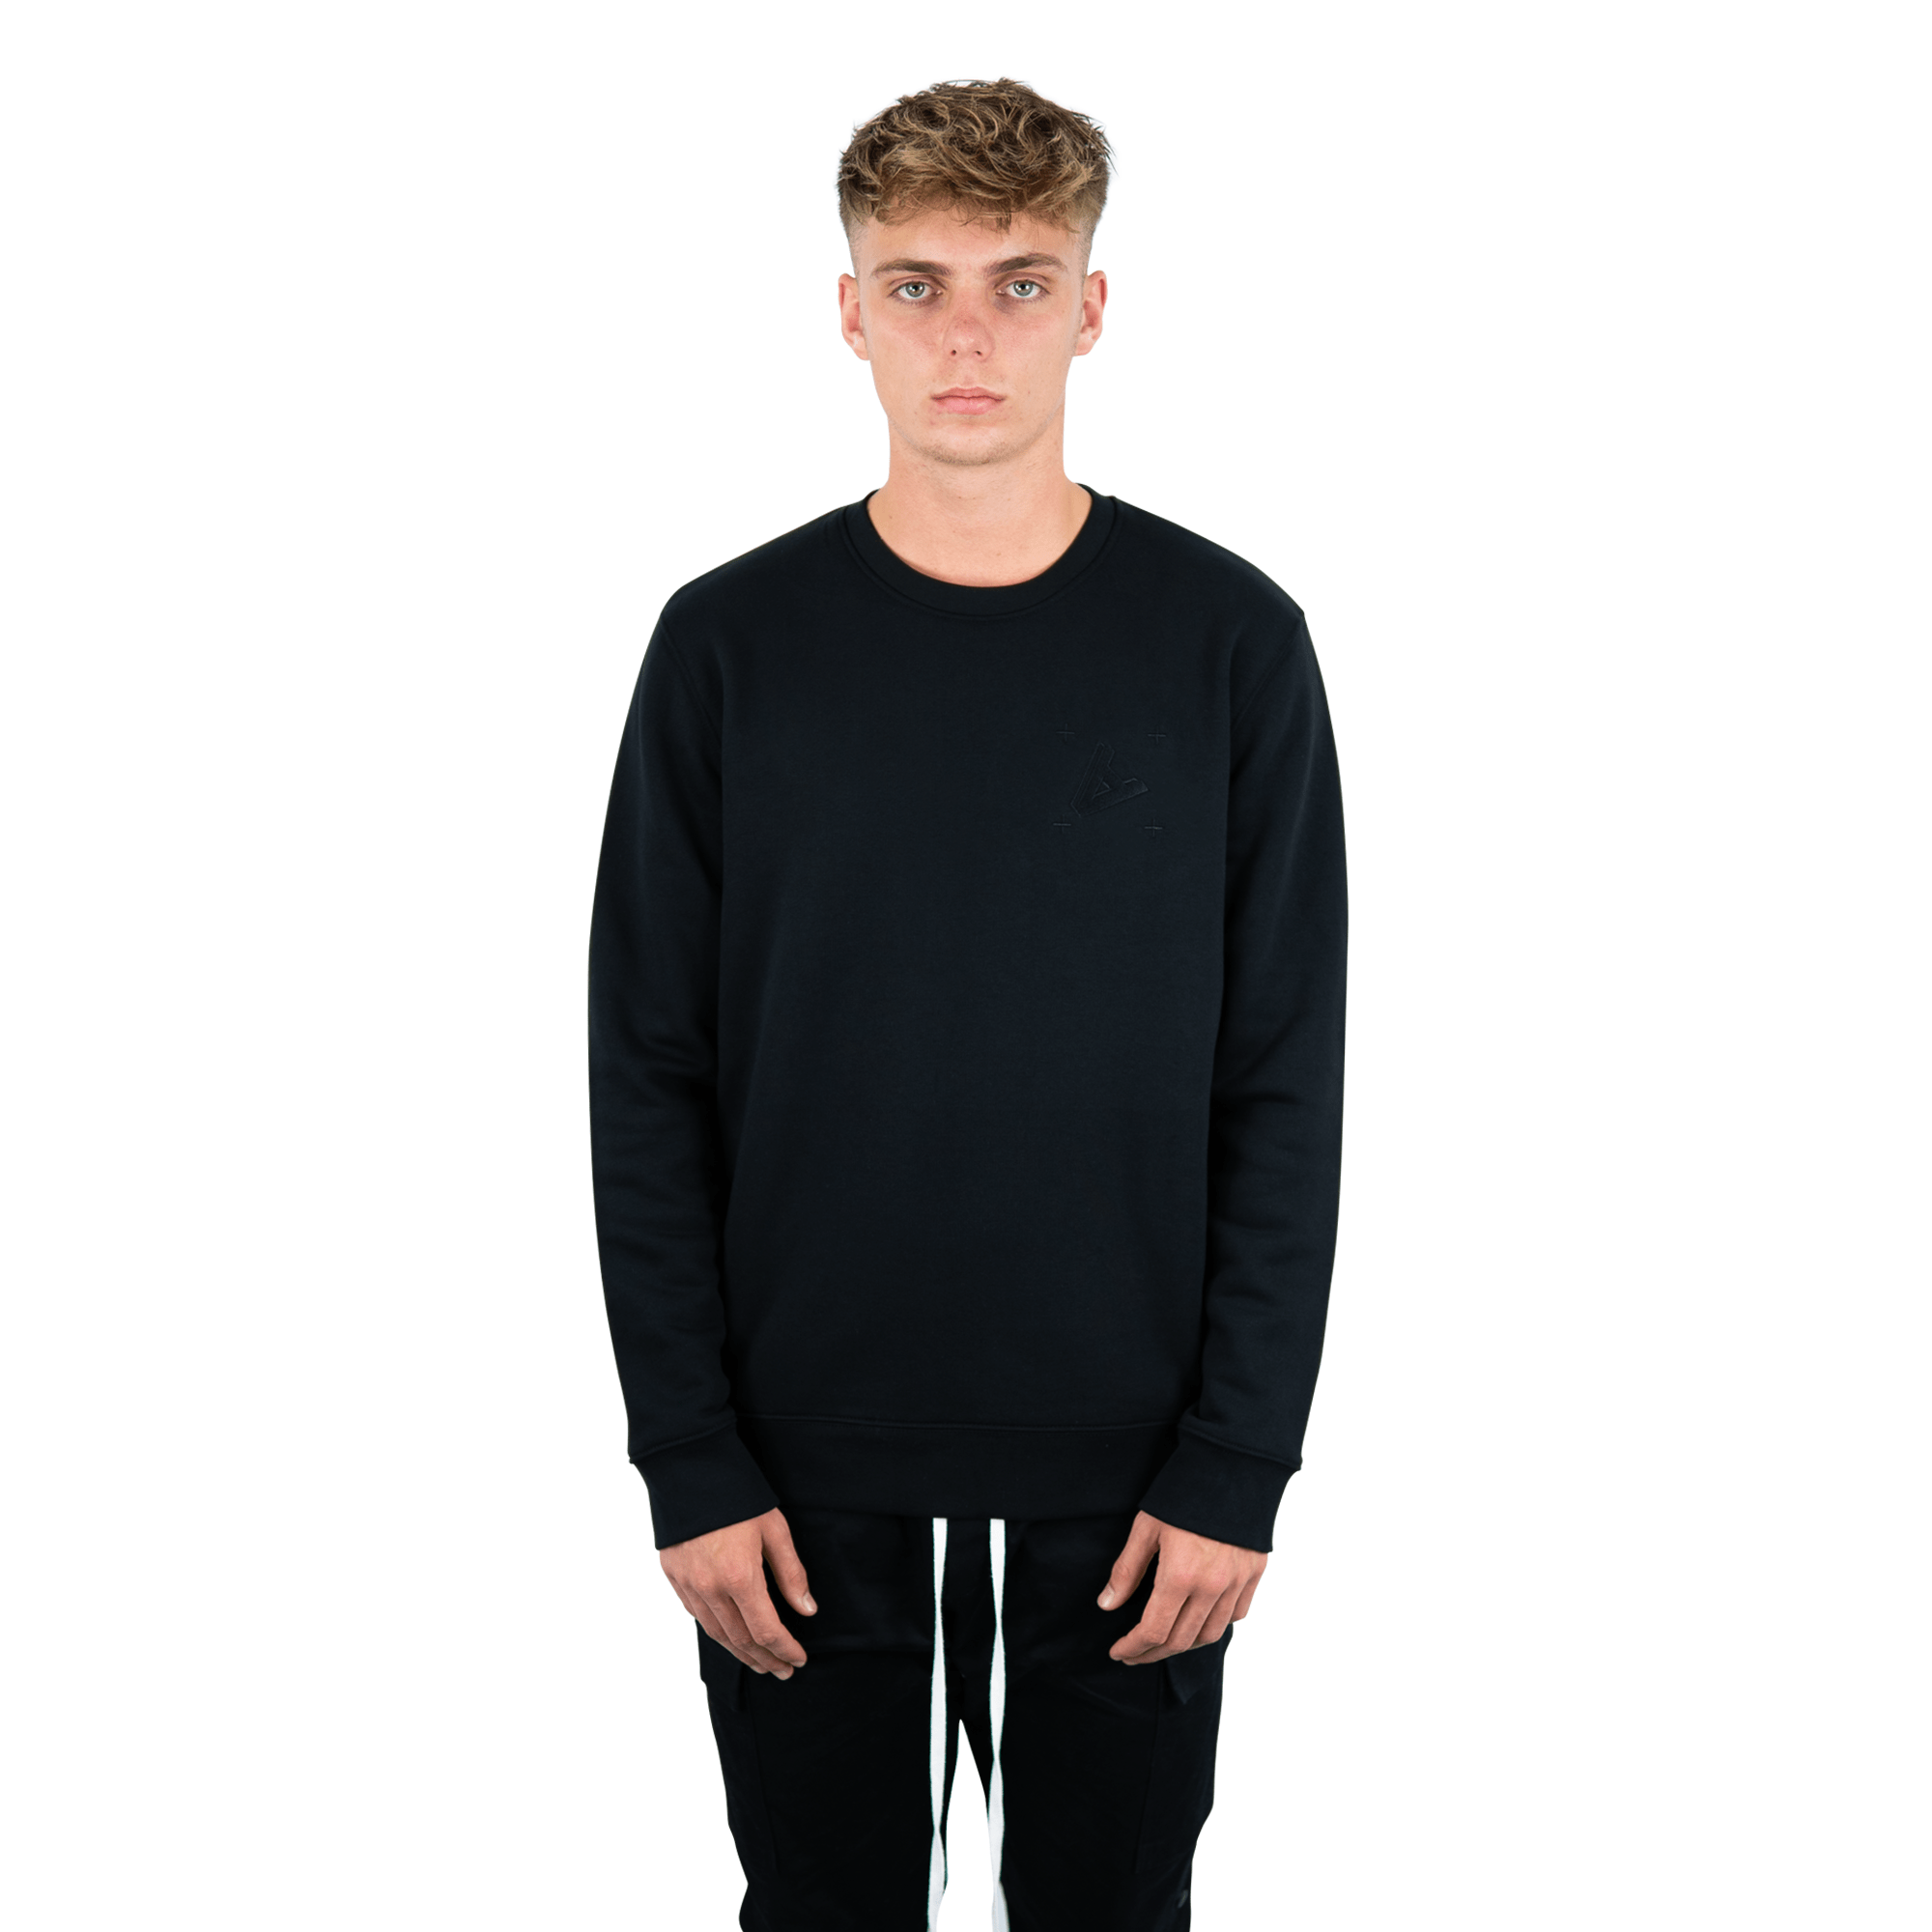 "ADYN ""Casting Shadows"" Collection - 'A' Embroidered Sweatshirt"